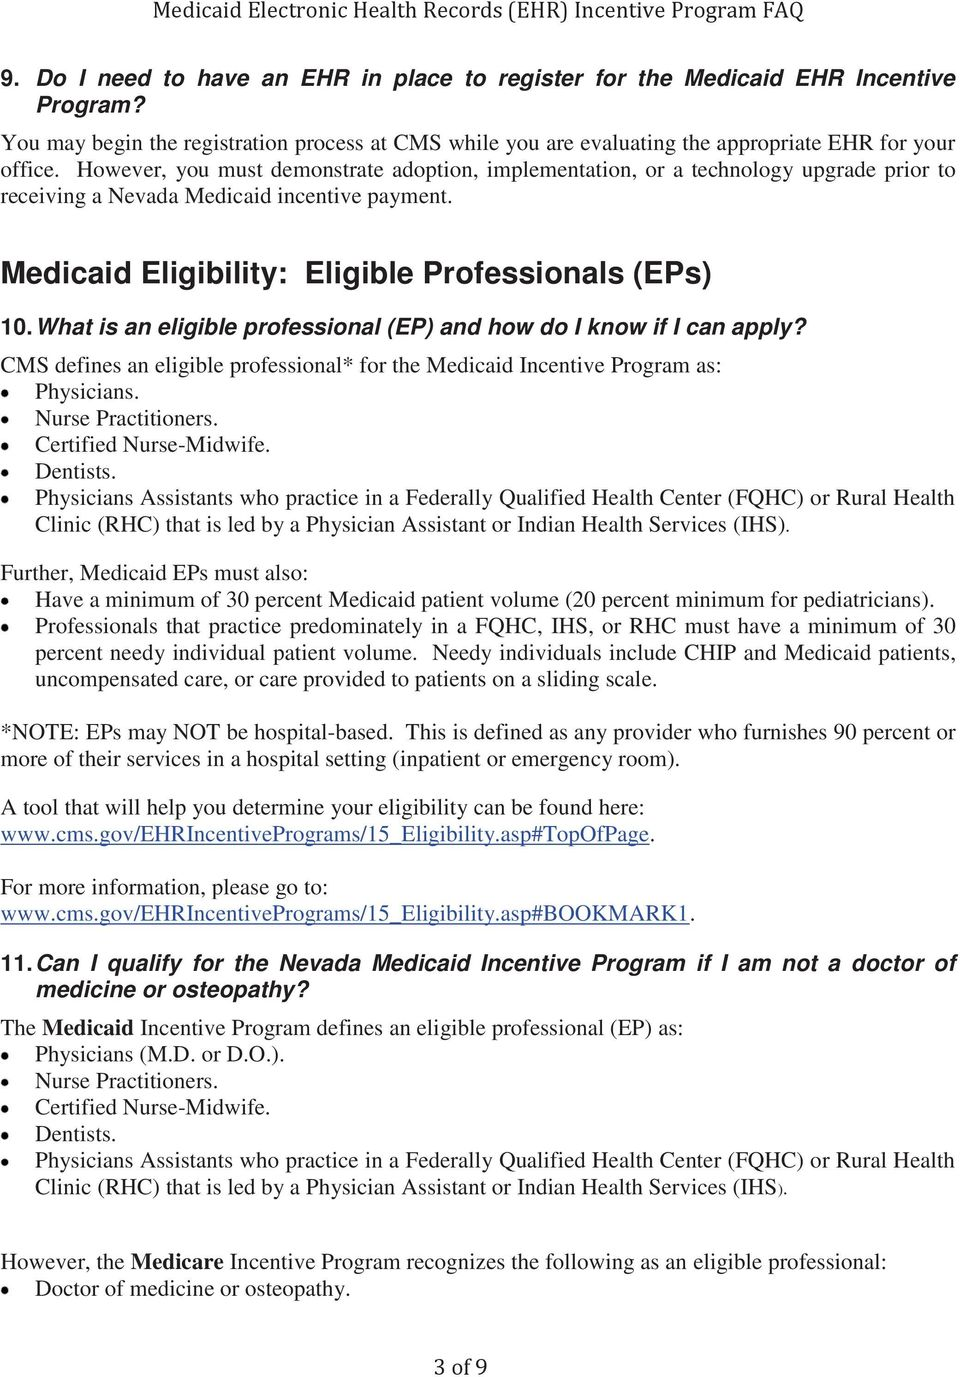 What is an eligible professional (EP) and how do I know if I can apply? CMS defines an eligible professional* for the Medicaid Incentive Program as: Physicians. Nurse Practitioners.